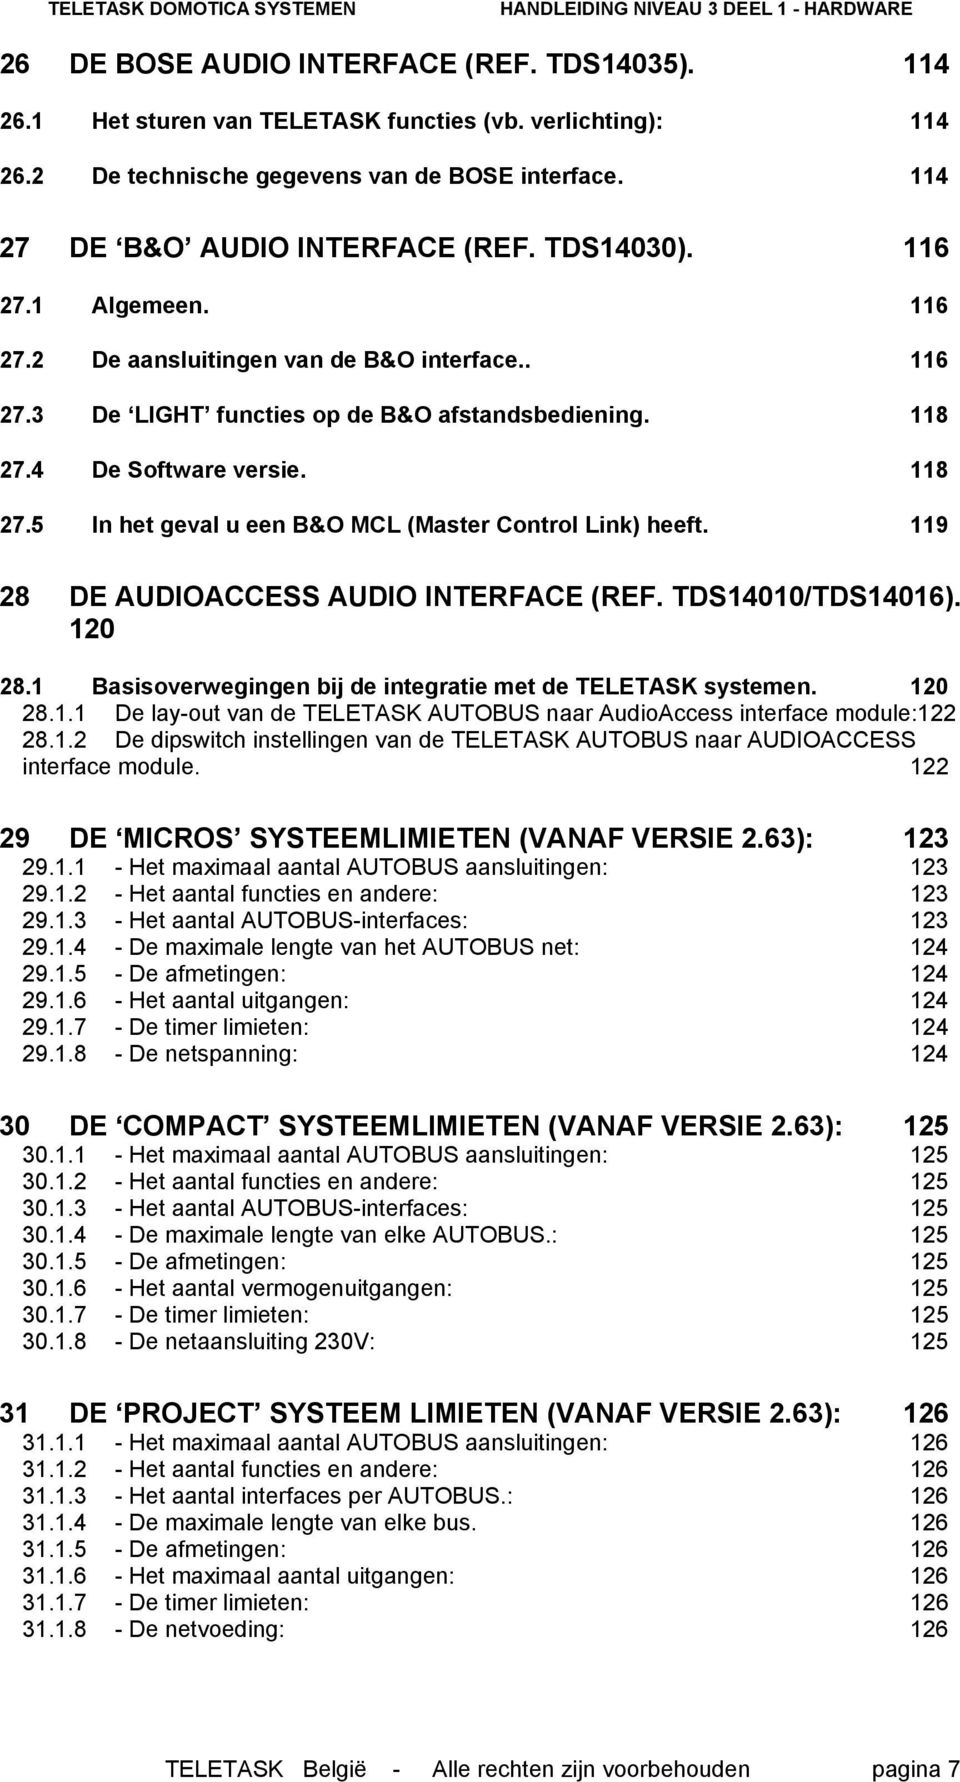 119 28 DE AUDIOACCESS AUDIO INTERFACE (REF. TDS14010/TDS14016). 120 28.1 Basisoverwegingen bij de integratie met de TELETASK systemen. 120 28.1.1 De lay-out van de TELETASK AUTOBUS naar AudioAccess interface module:122 28.